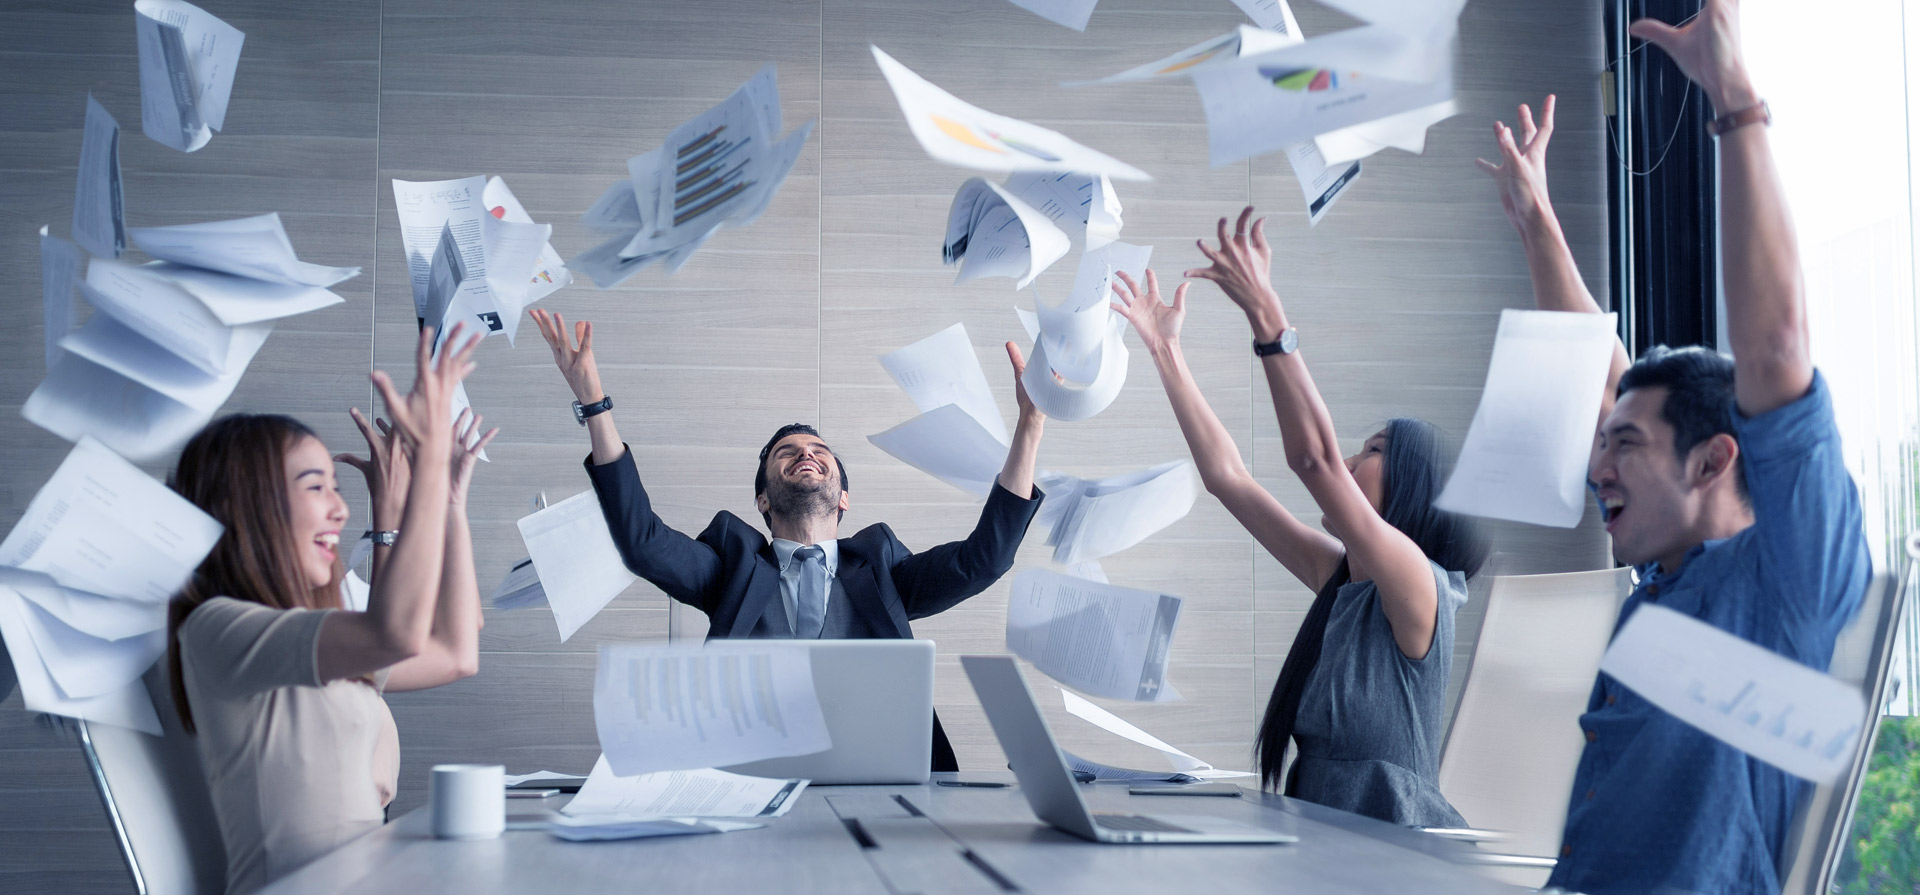 The Coming Reality of the Paperless Office